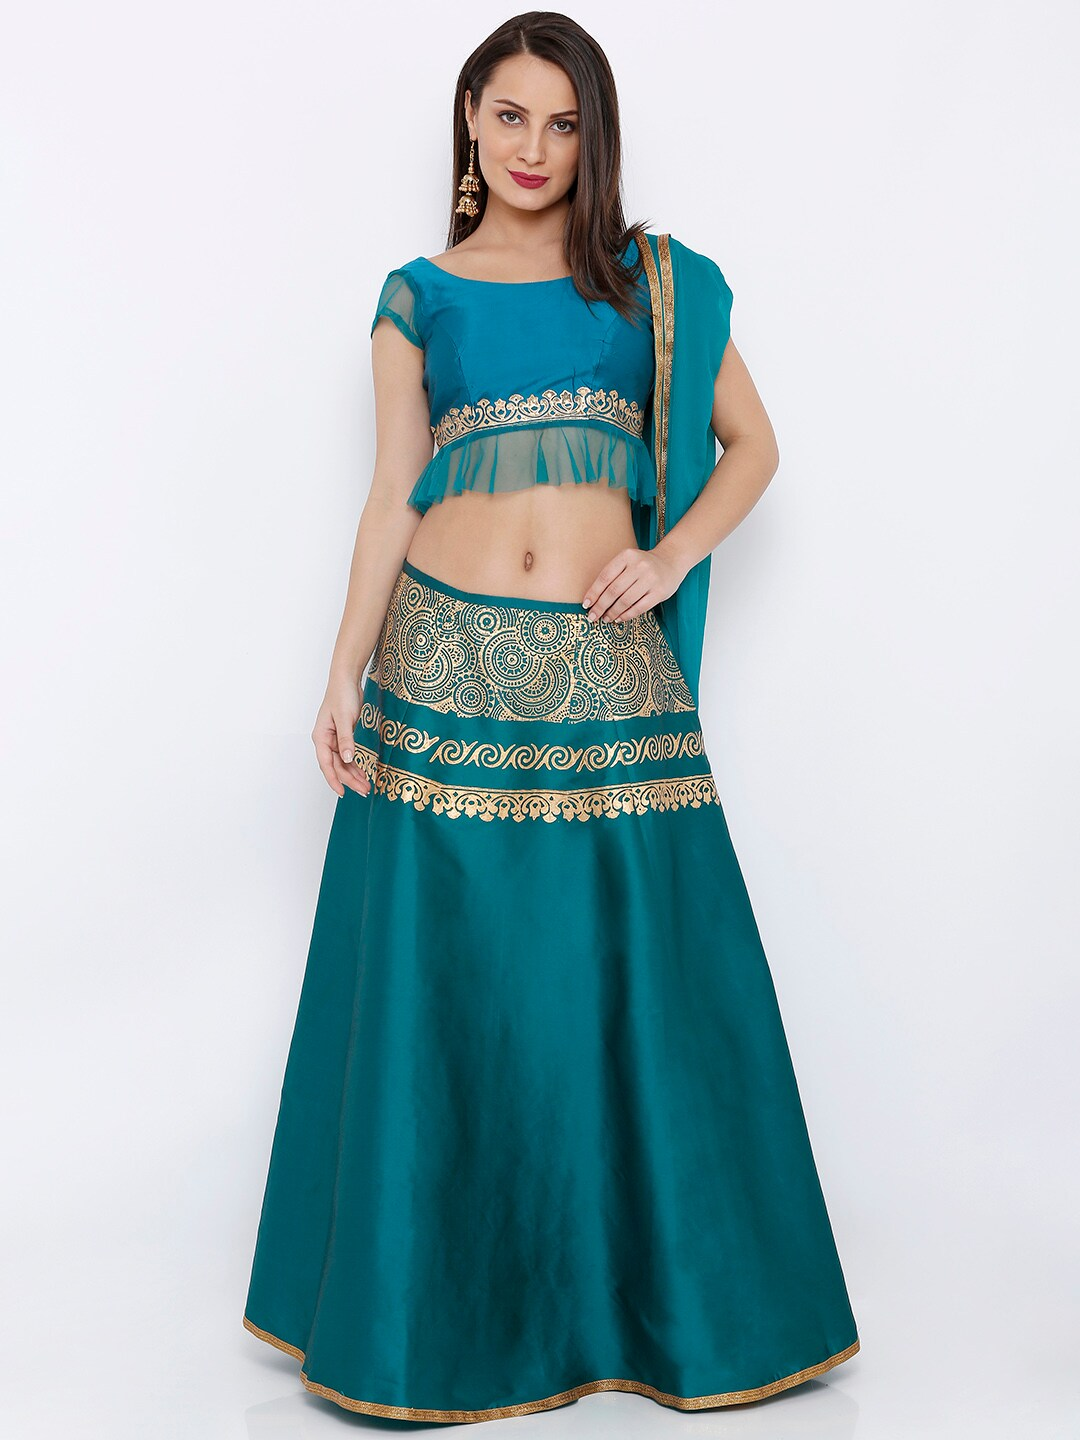 Ira Soleil Blue & Gold-Toned Printed Ready to Wear Lehenga & Blouse with Dupatta